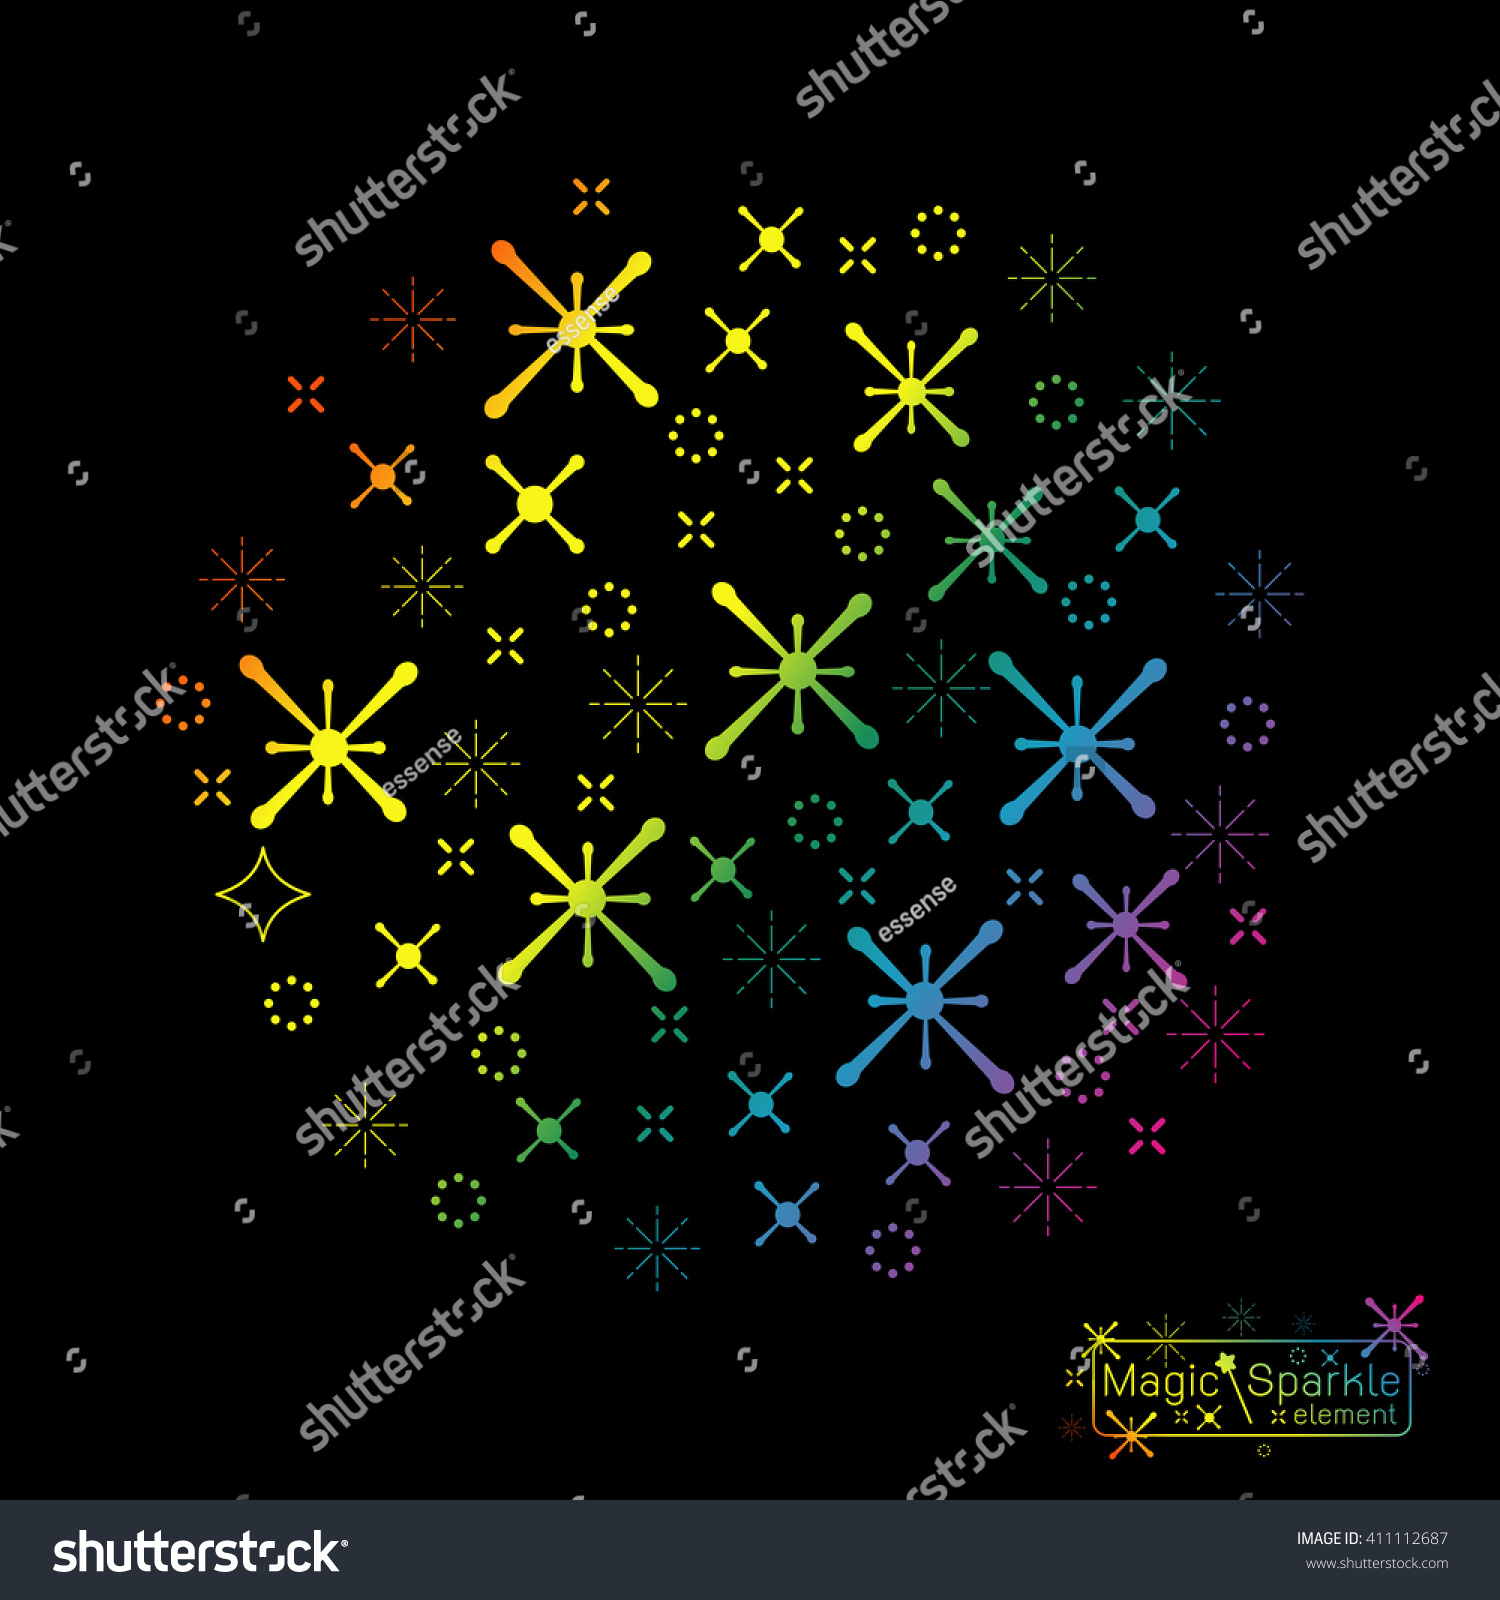 Set Magic Sparkle Wand Design Elements Stock Vector 411112687 ...